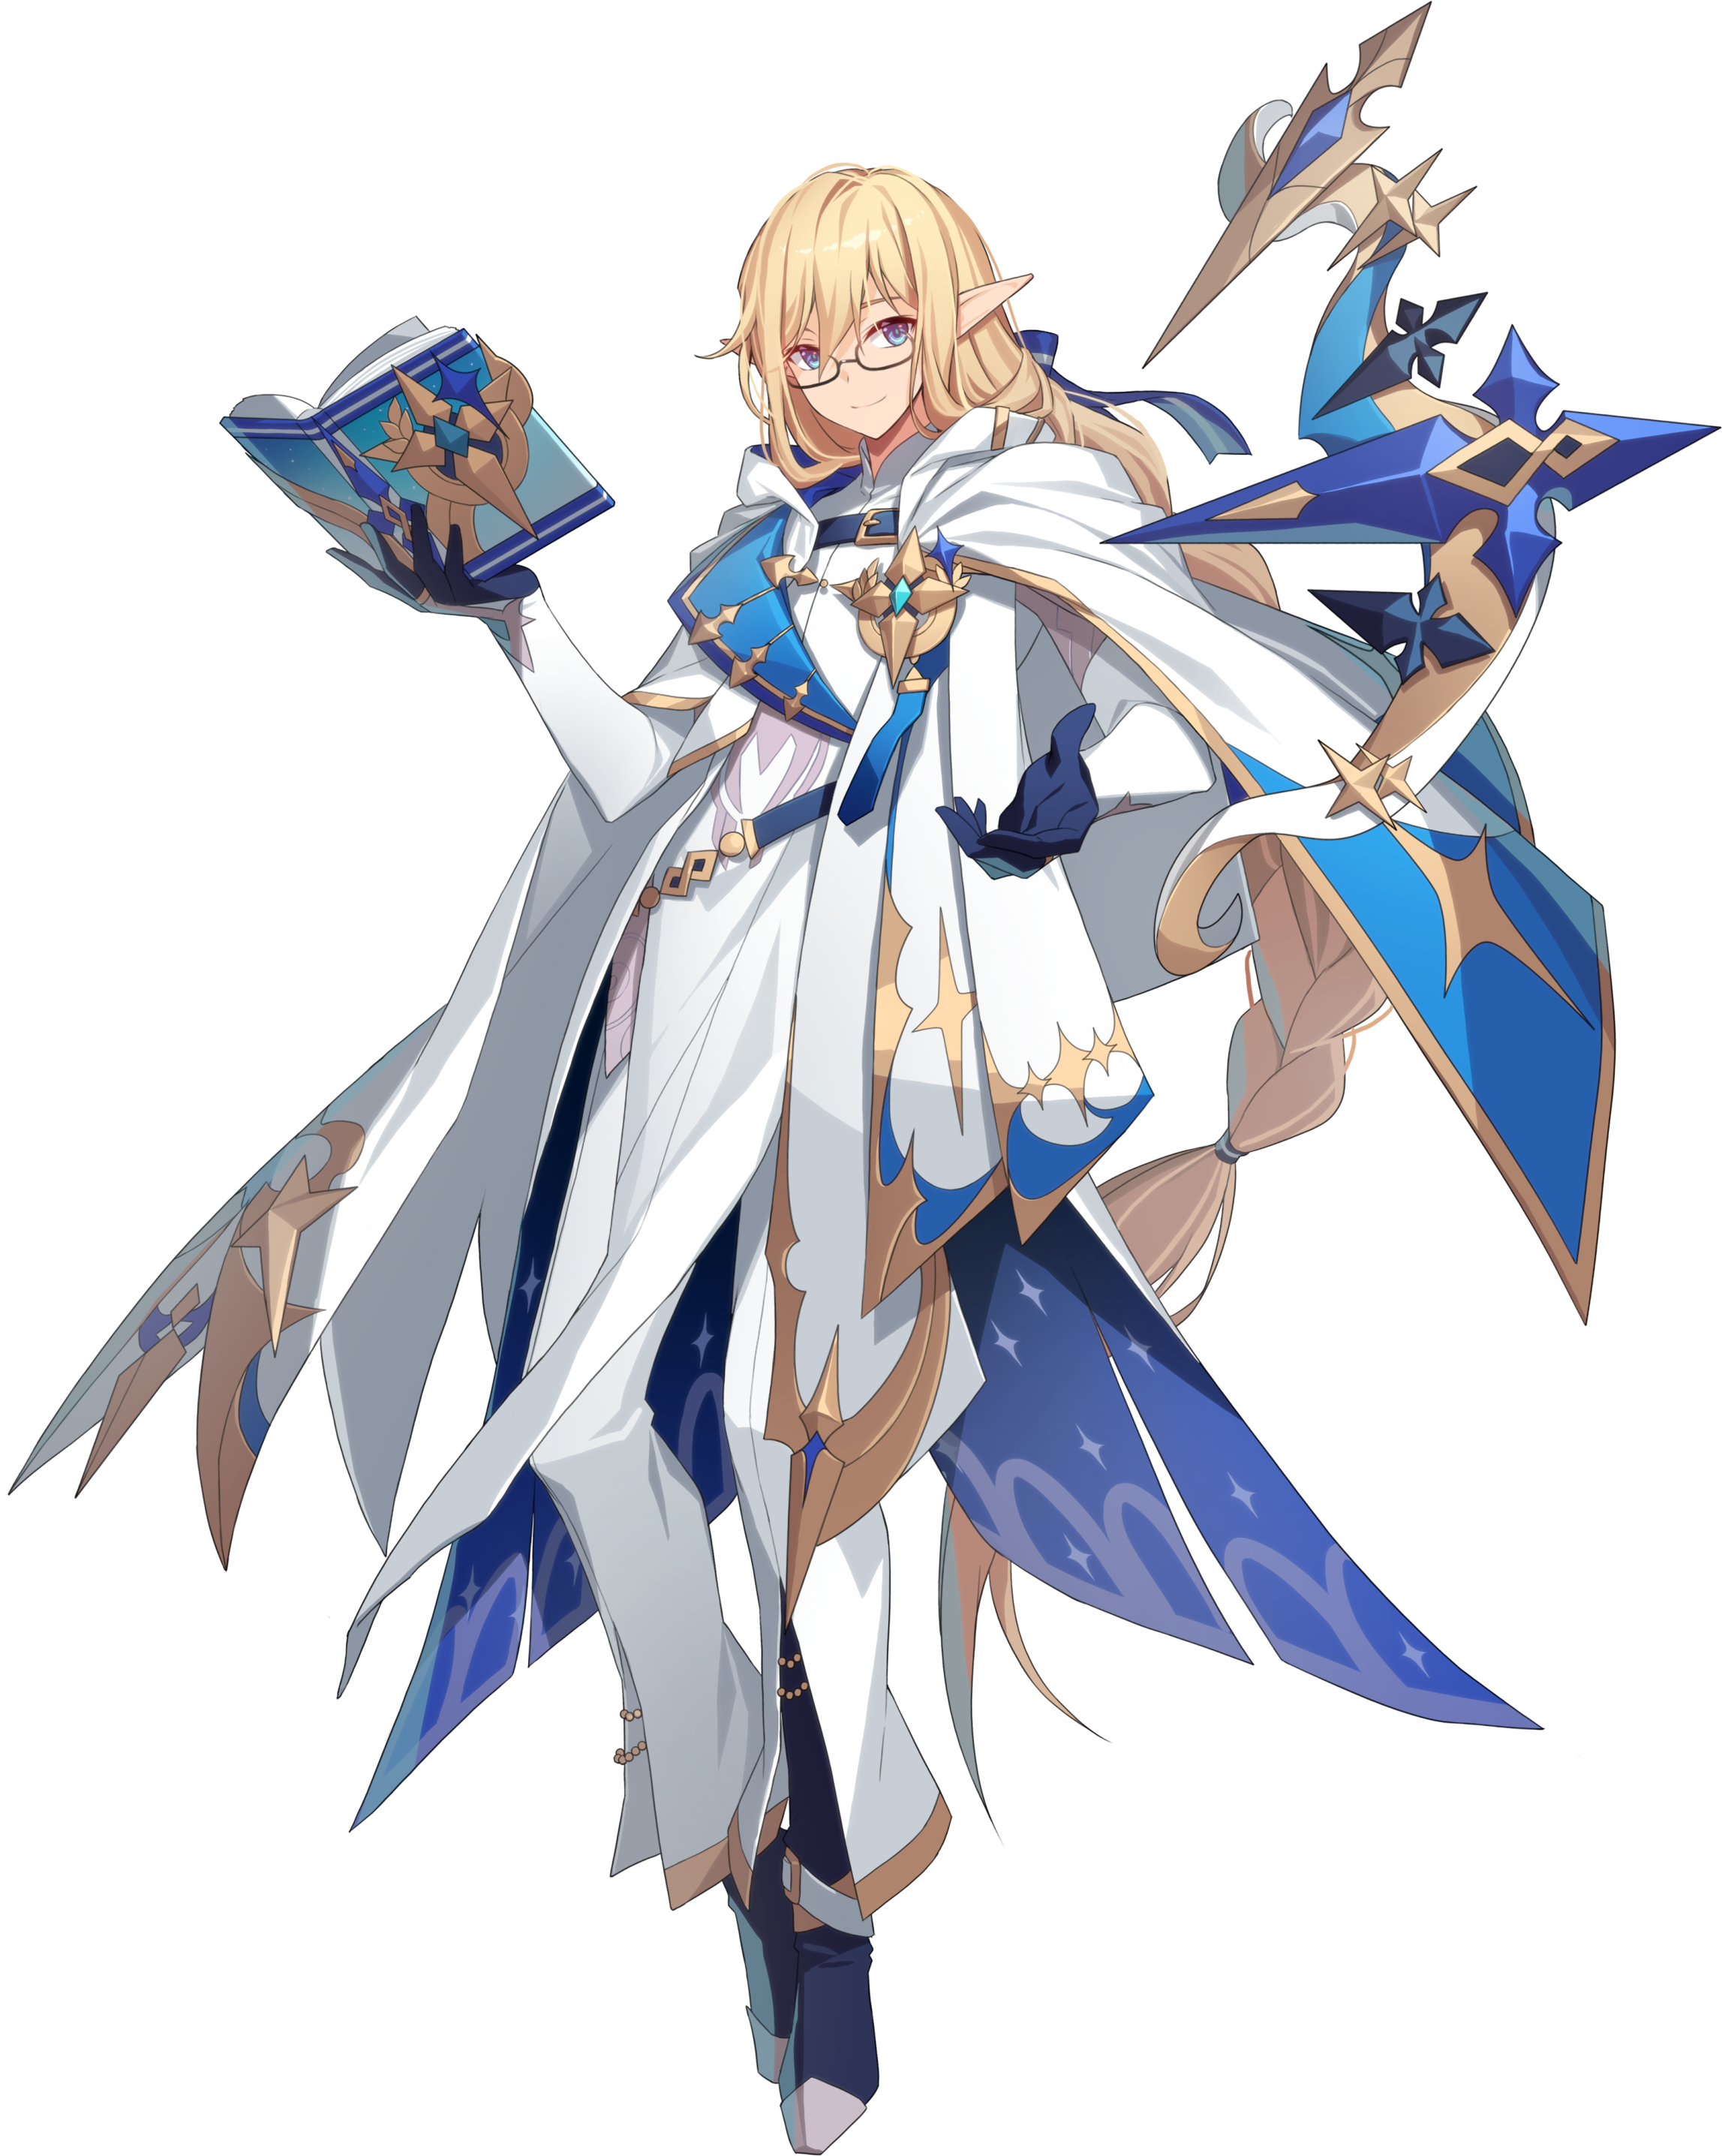 Grandiel Grand Chase Dimensional Chaser Grand Chase Wiki Fandom Anime Art Fantasy Character Art Concept Art Characters